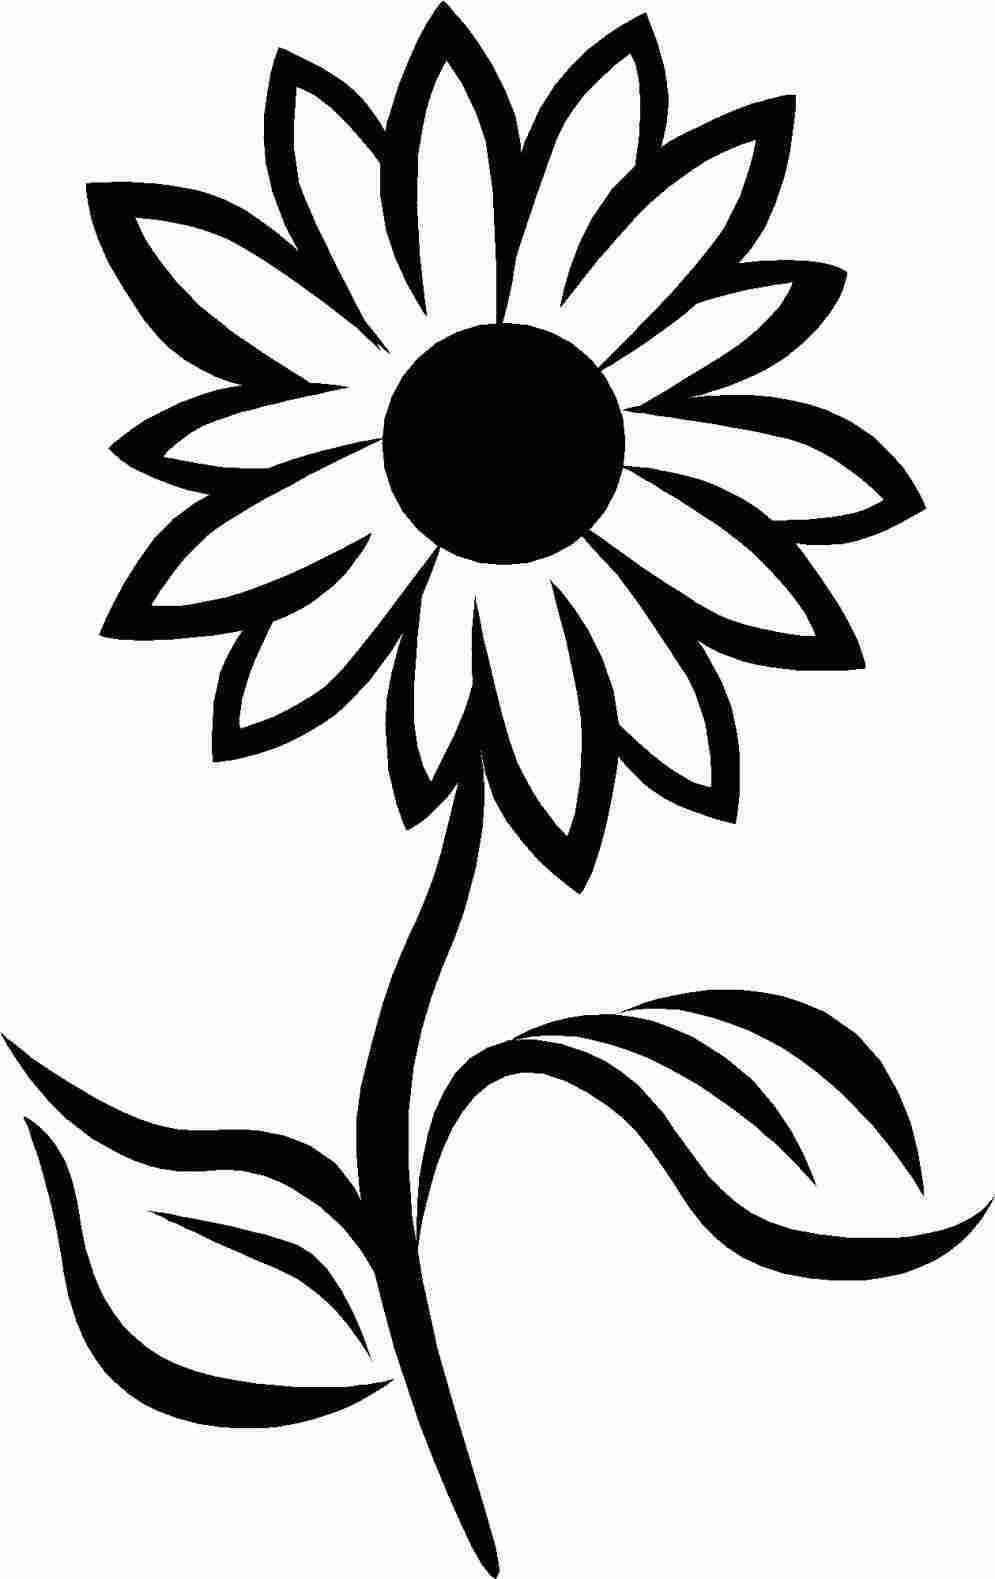 drawing of a sunflower sunflower tattoo drawing at paintingvalleycom explore of drawing a sunflower